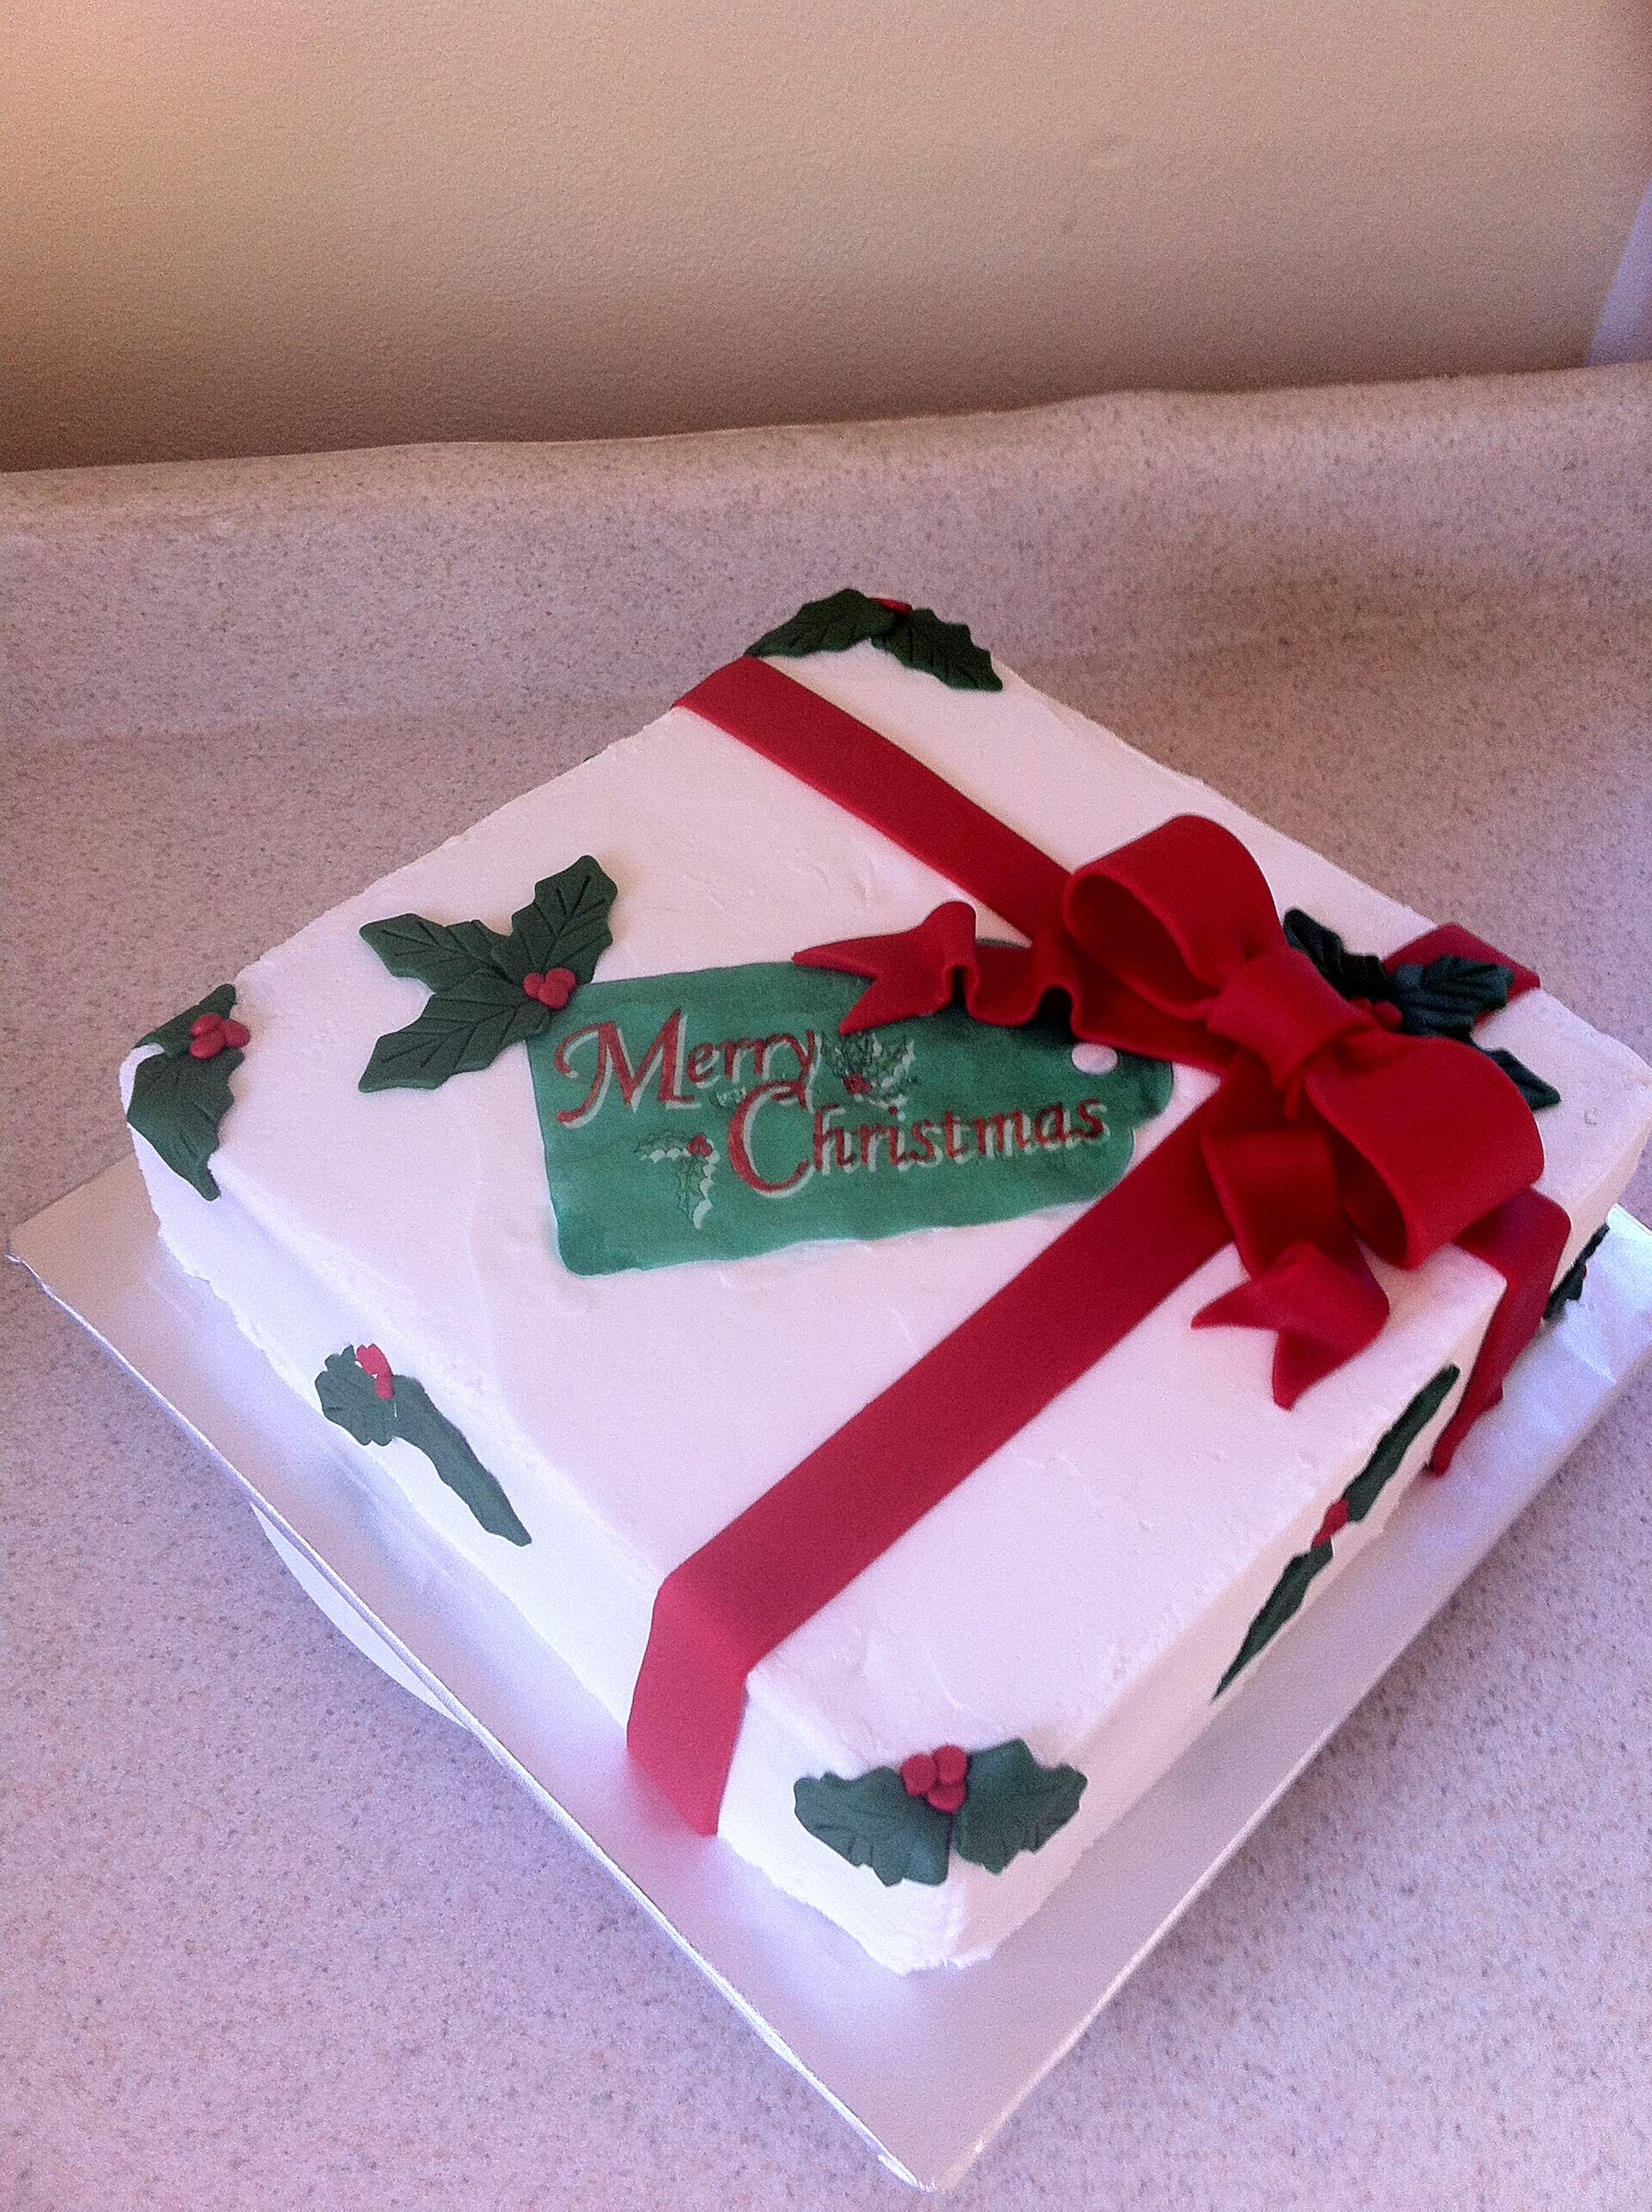 Christmas Cake Decoration Present : Groom Cake, Anniversary, Retirement, Graduation Etc ...